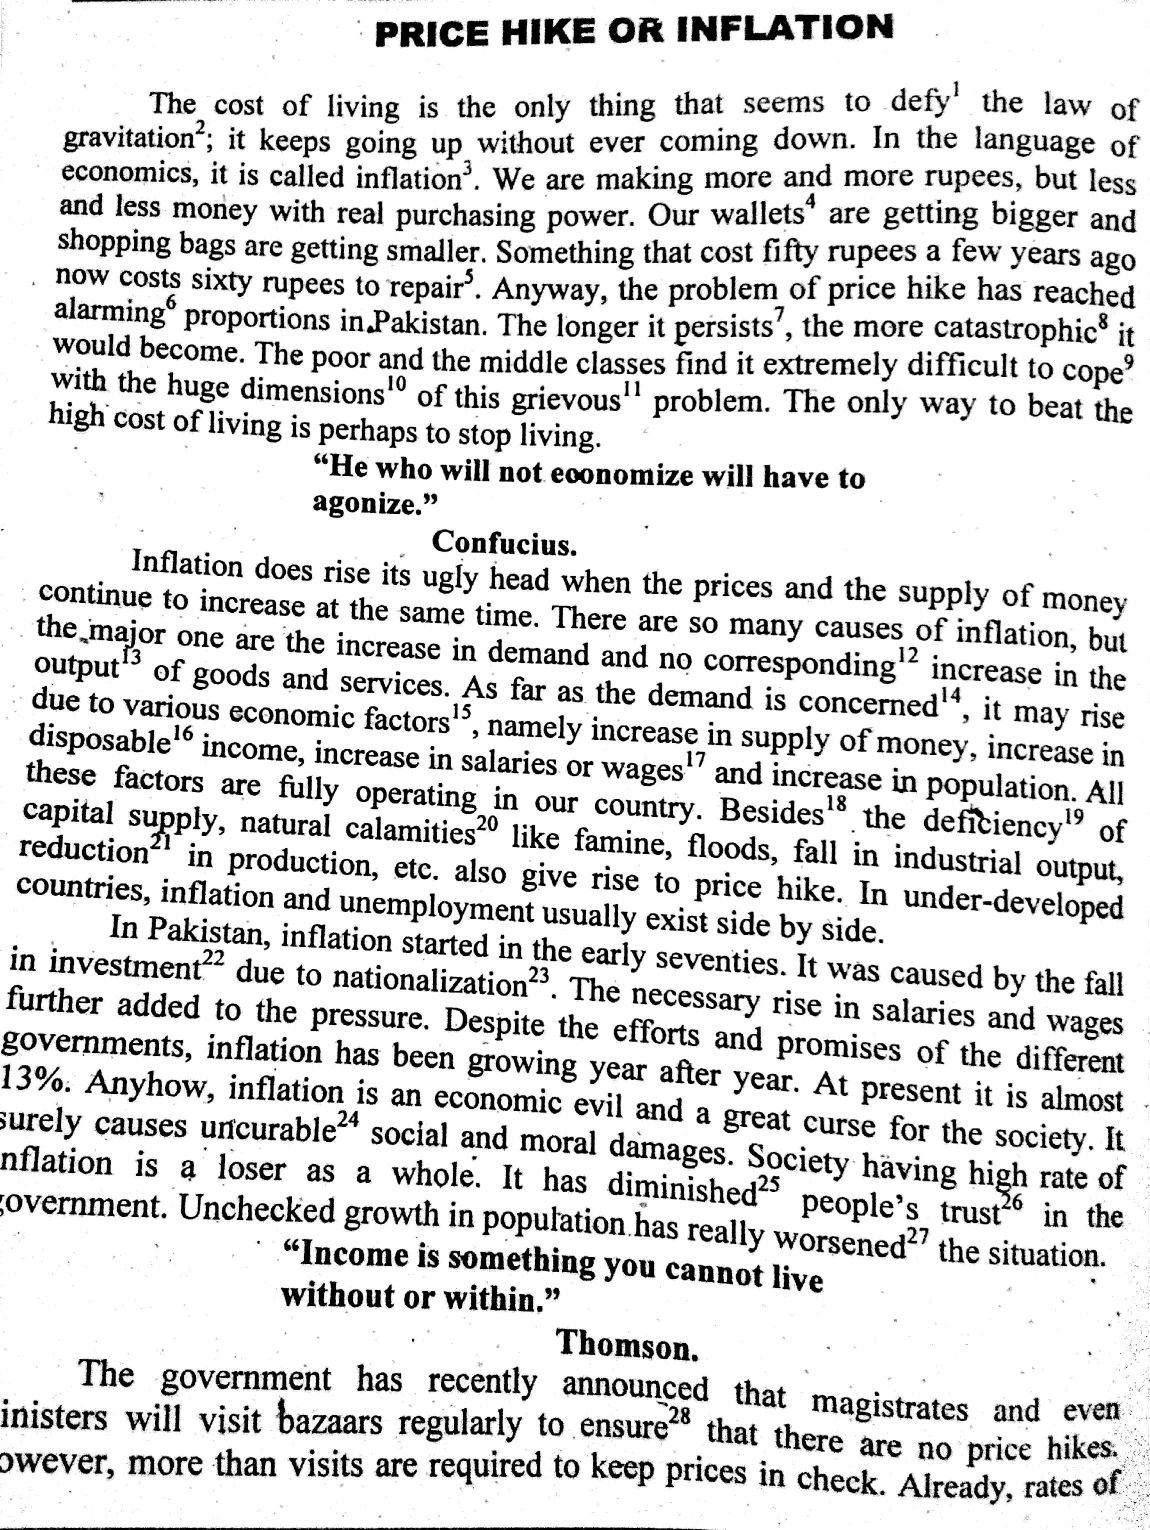 an essay on inflation in pakistan The pakistan development review 45 : 2 (summer 2006) pp 185–202 inflation in pakistan mohsin s khan and axel schimmelpfennig this paper examines the.